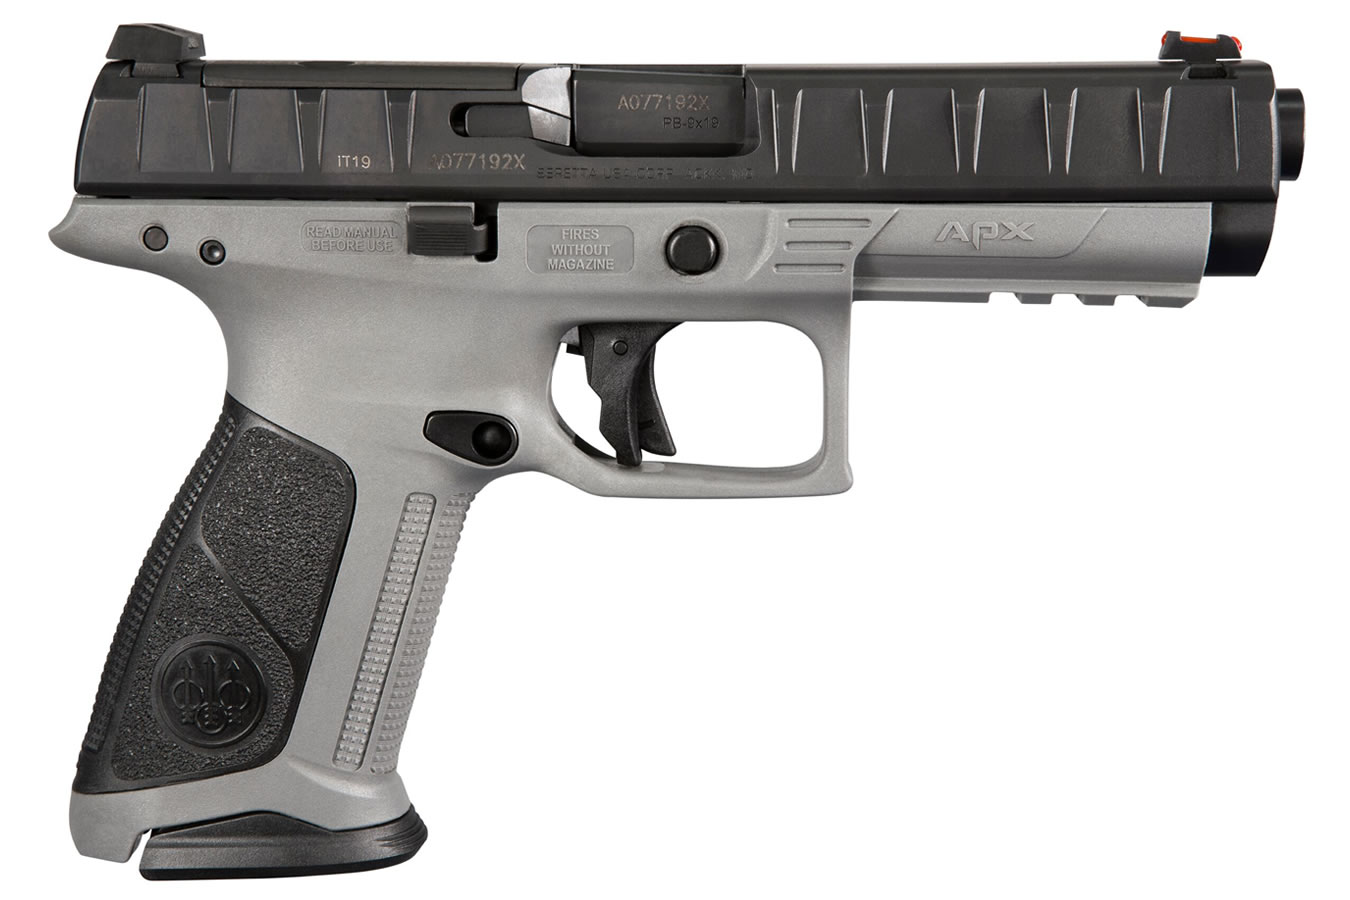 APX TARGET 9MM OPTICS READY STRIKER-FIRED PISTOL